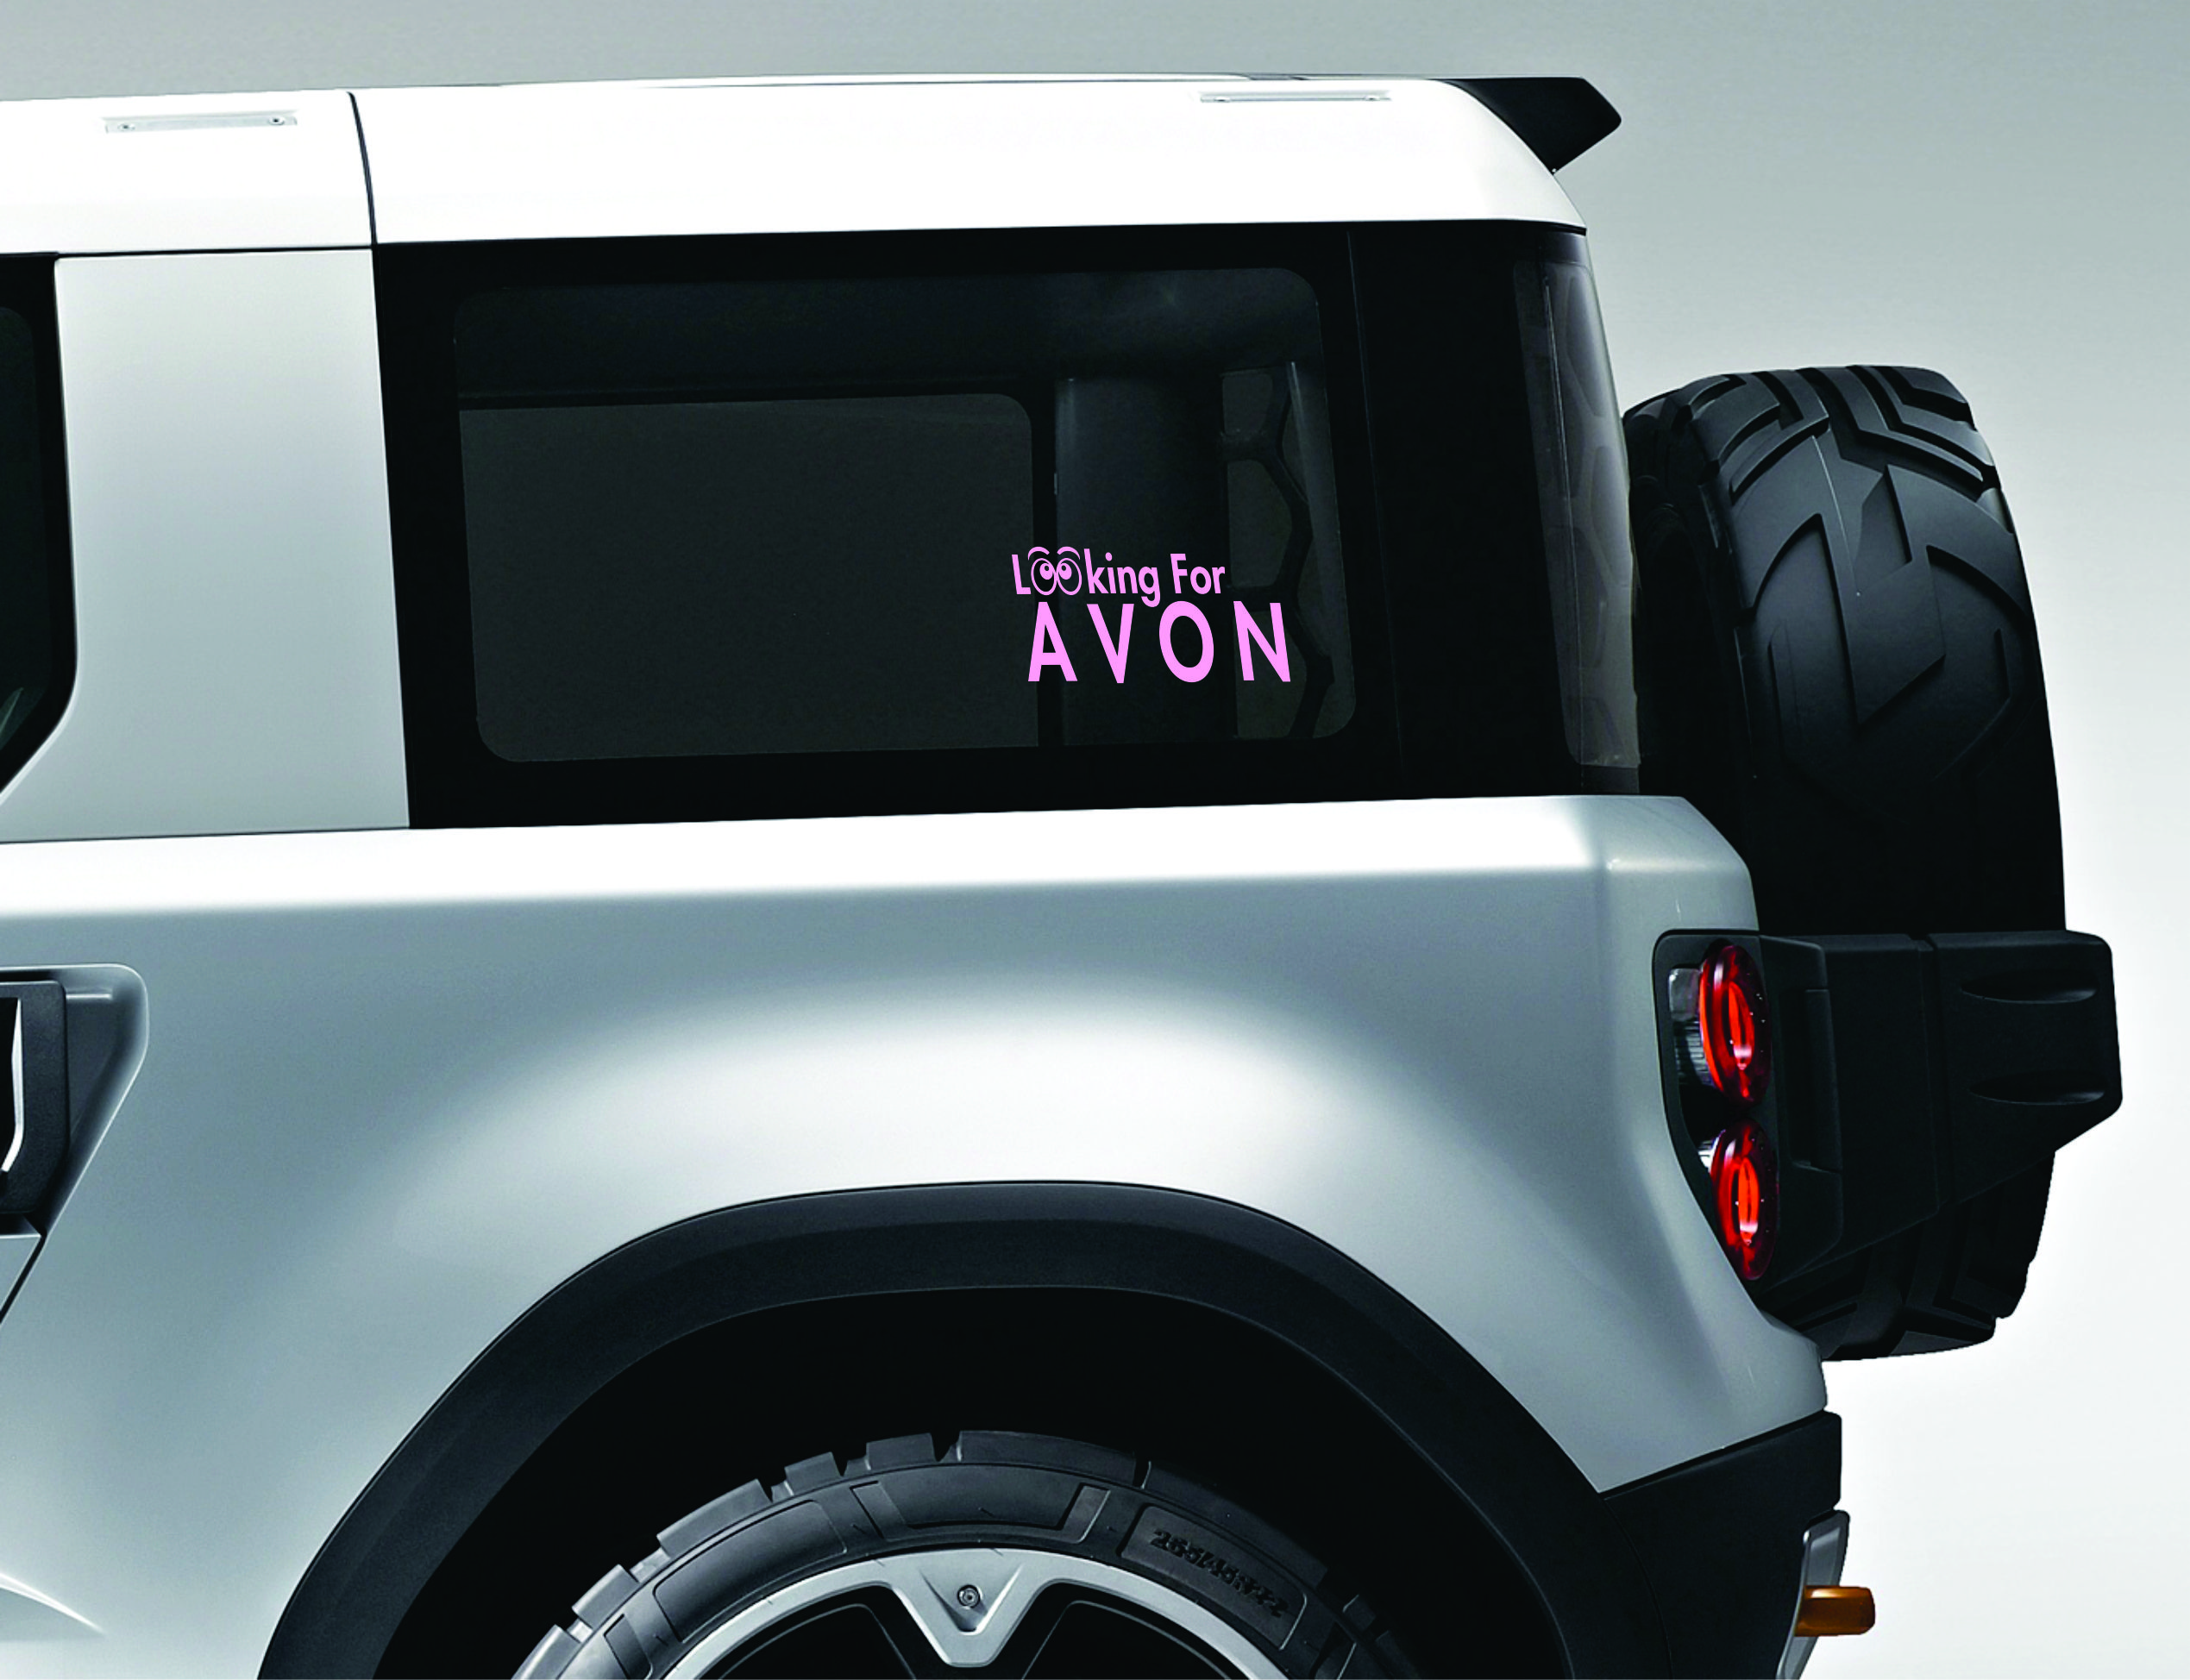 A New Style Avon Window Decal Our Window Decals Are Around 6 X 6 In Size And Sell For 5 Each Or 10 Each If Cust Avon Avon Business Avon Representative [ 1948 x 2539 Pixel ]